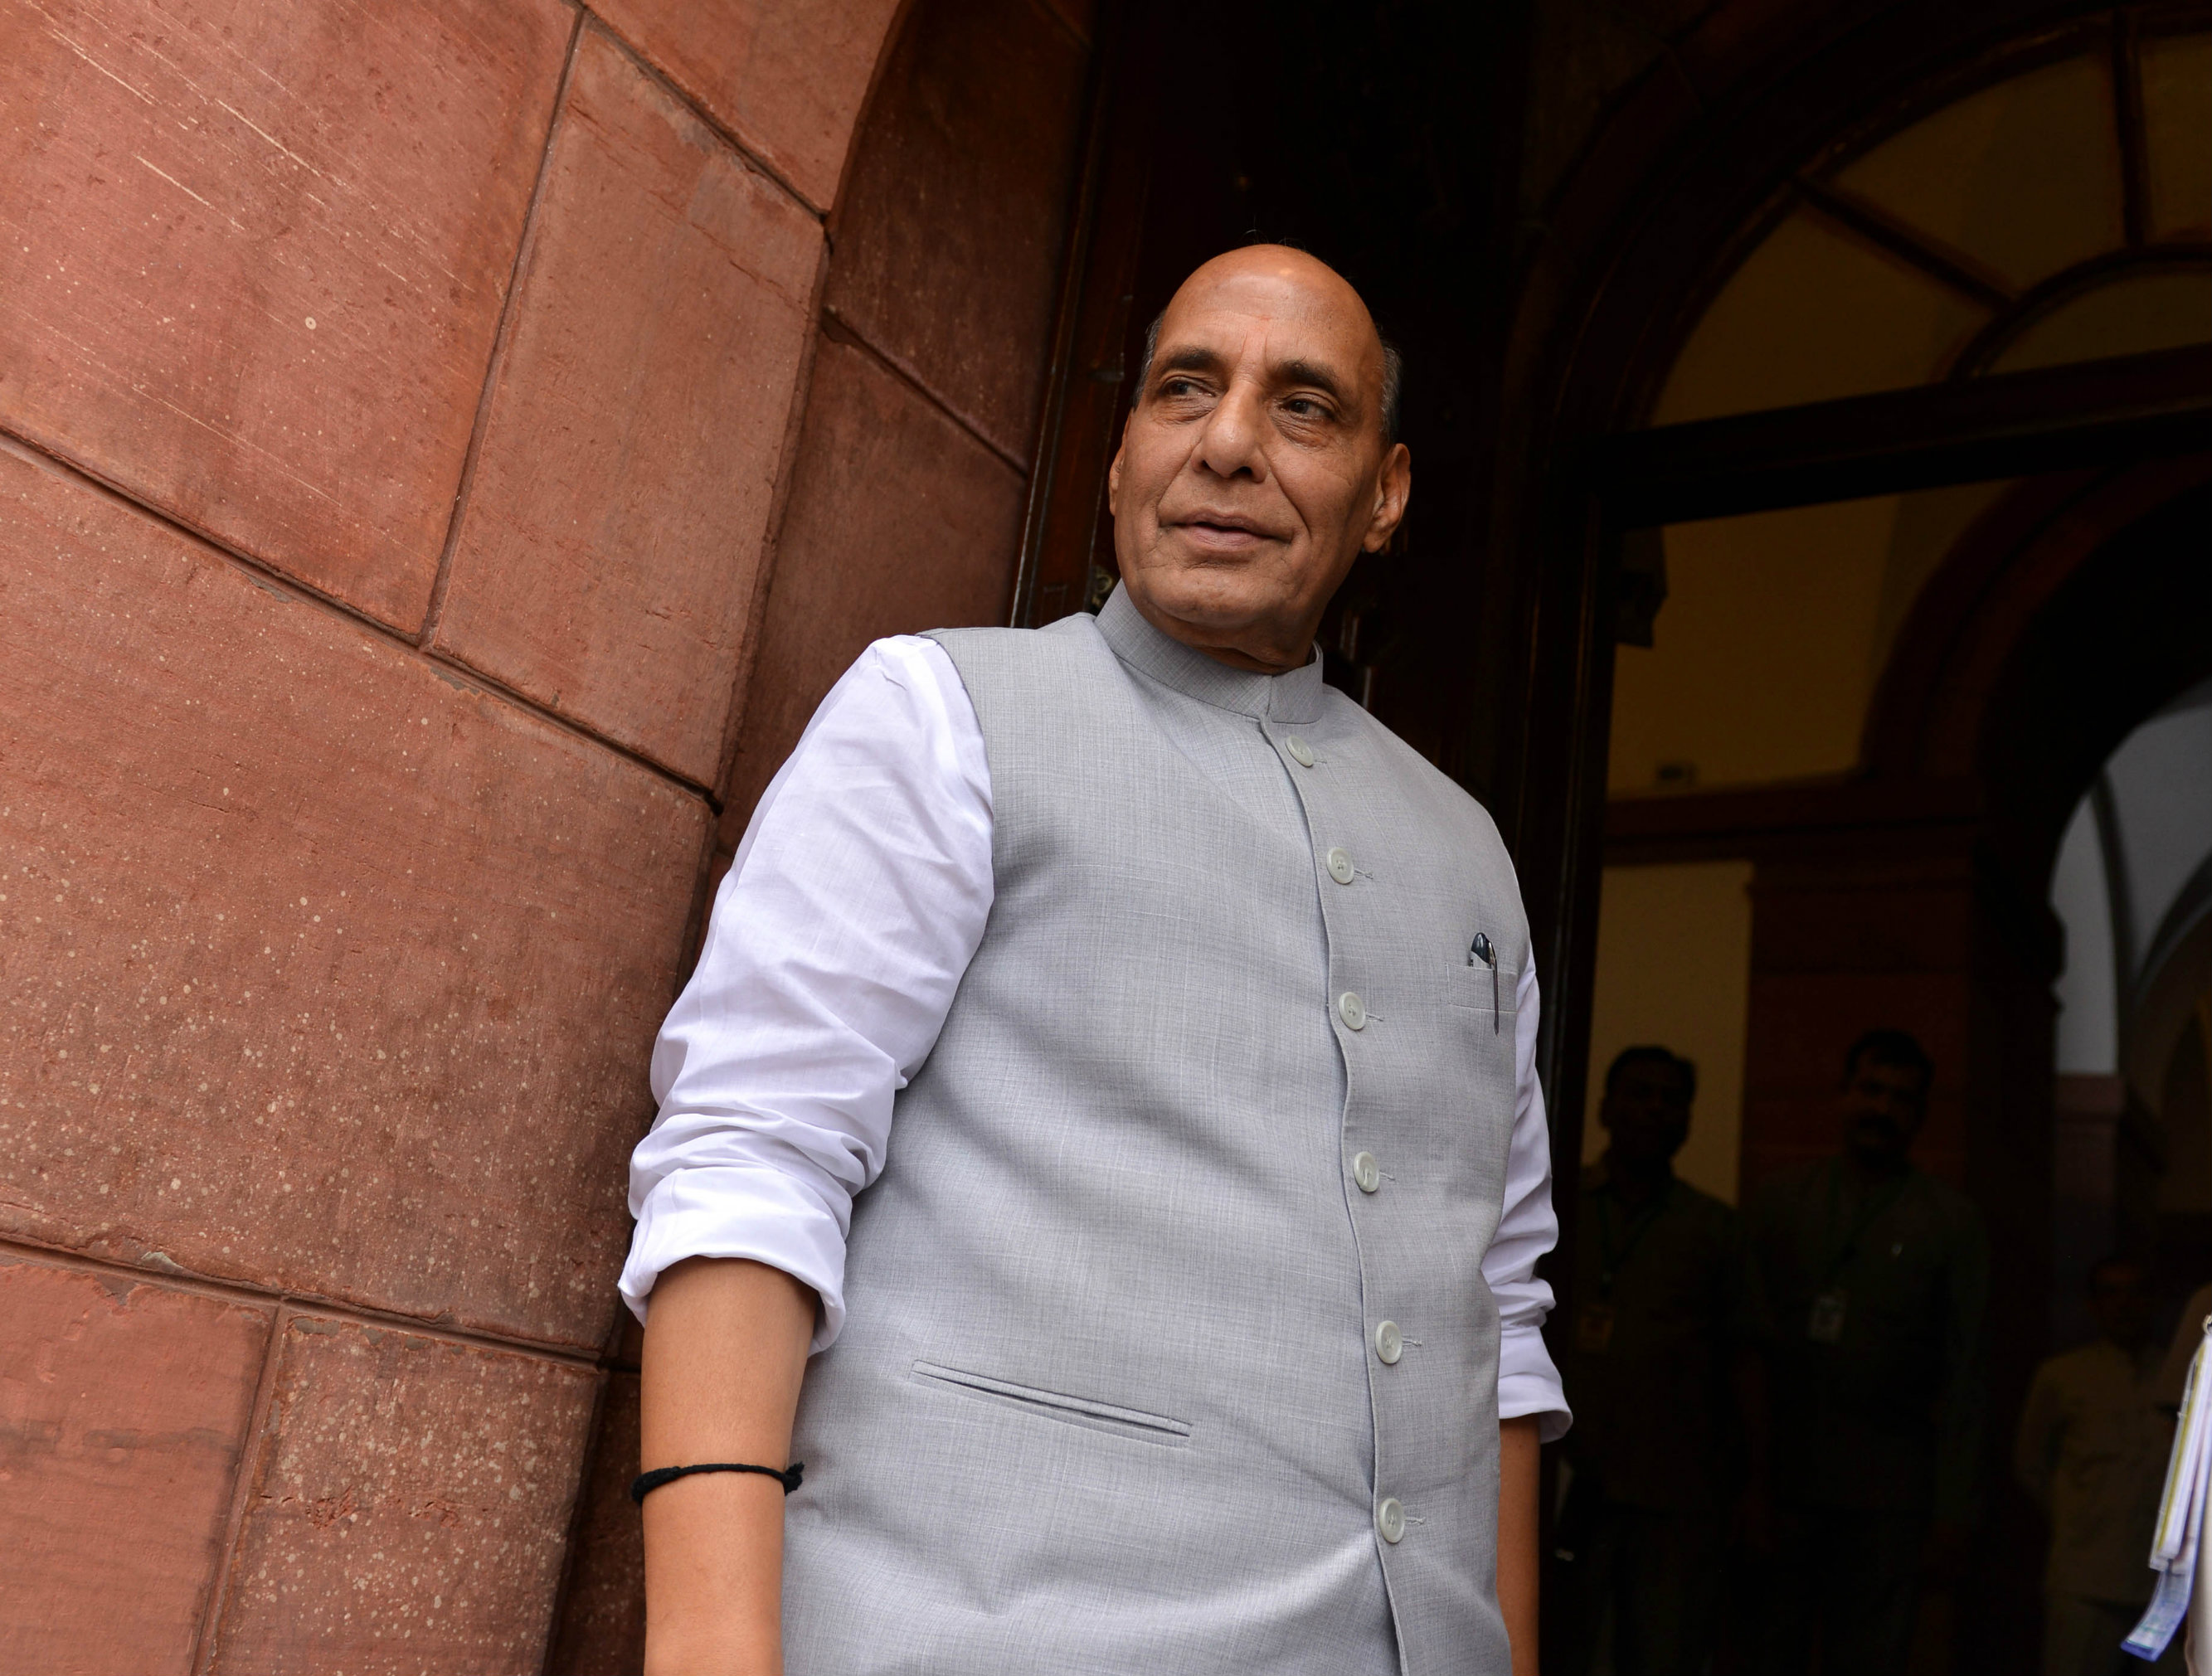 Rajnath Singh told the Lok Sabha on Friday that the BJP is